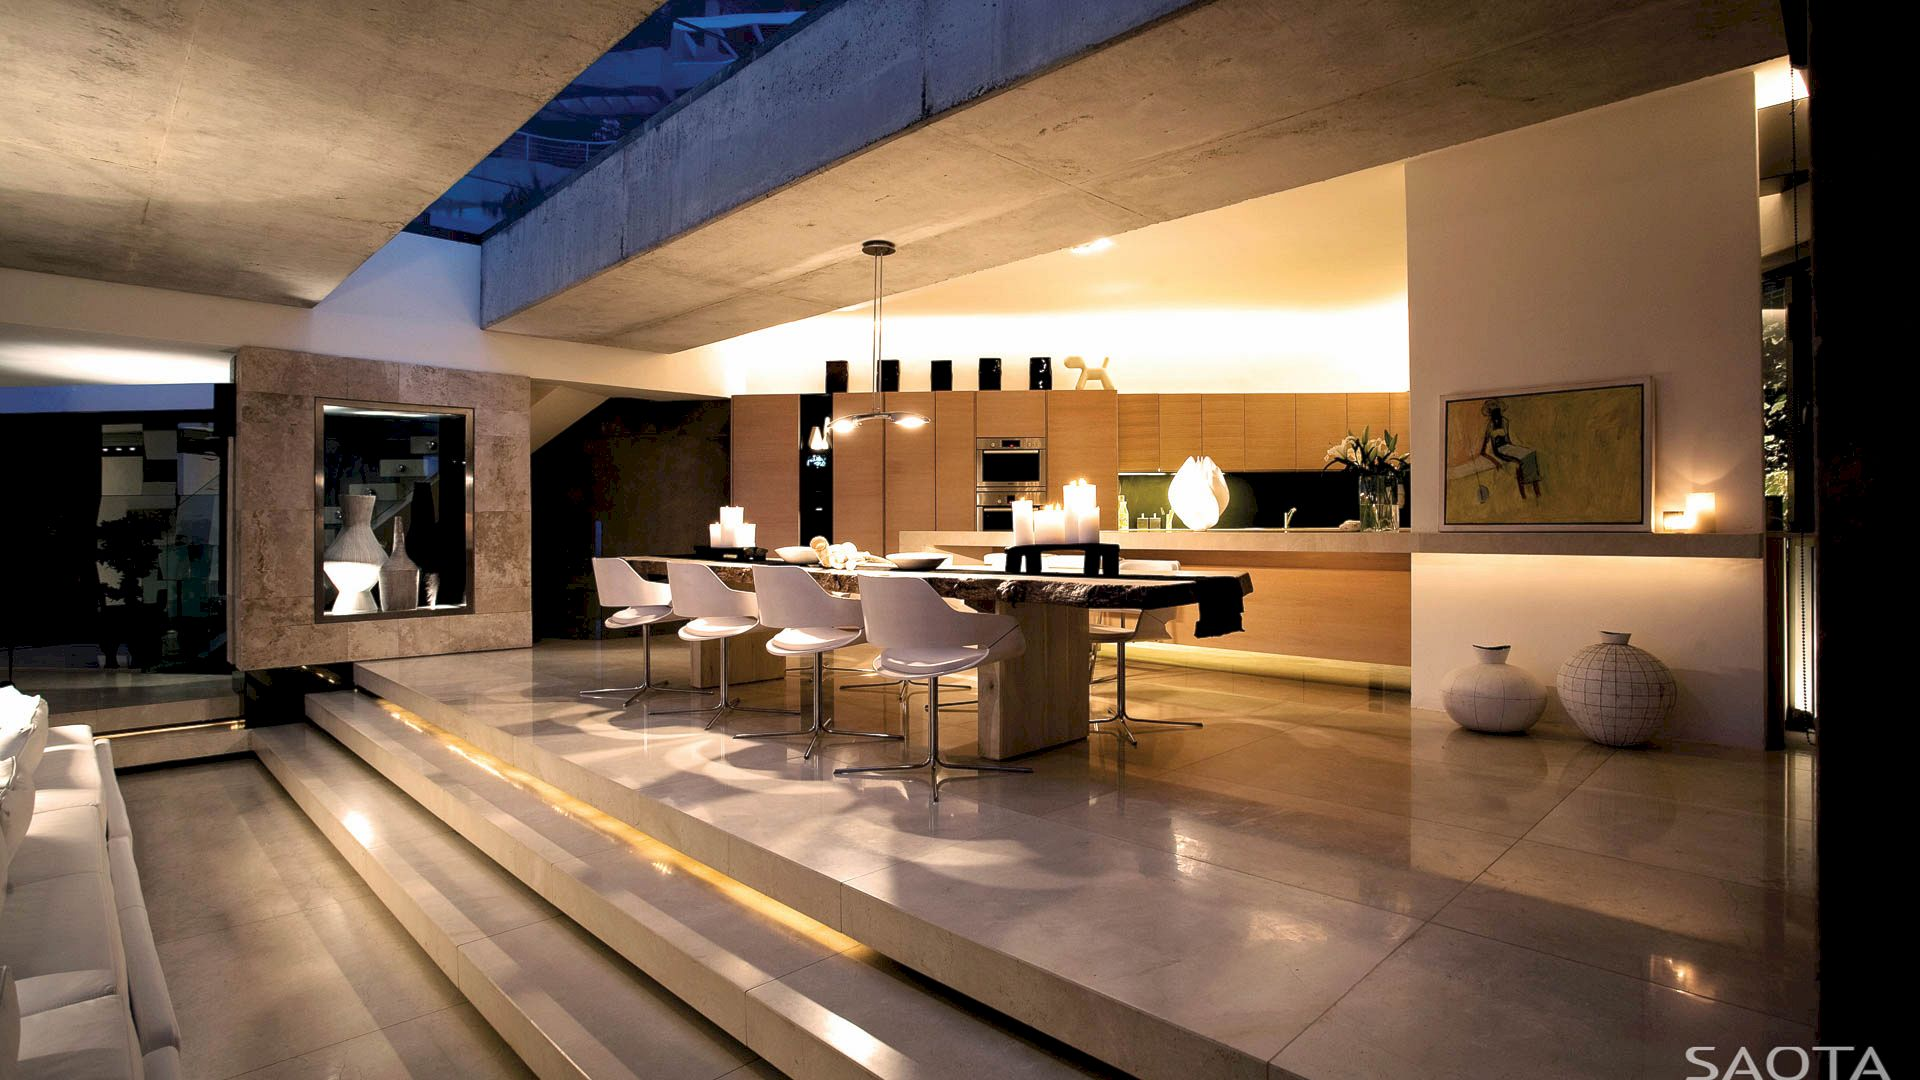 LGV 5 By SAOTA Architecture And Design 1